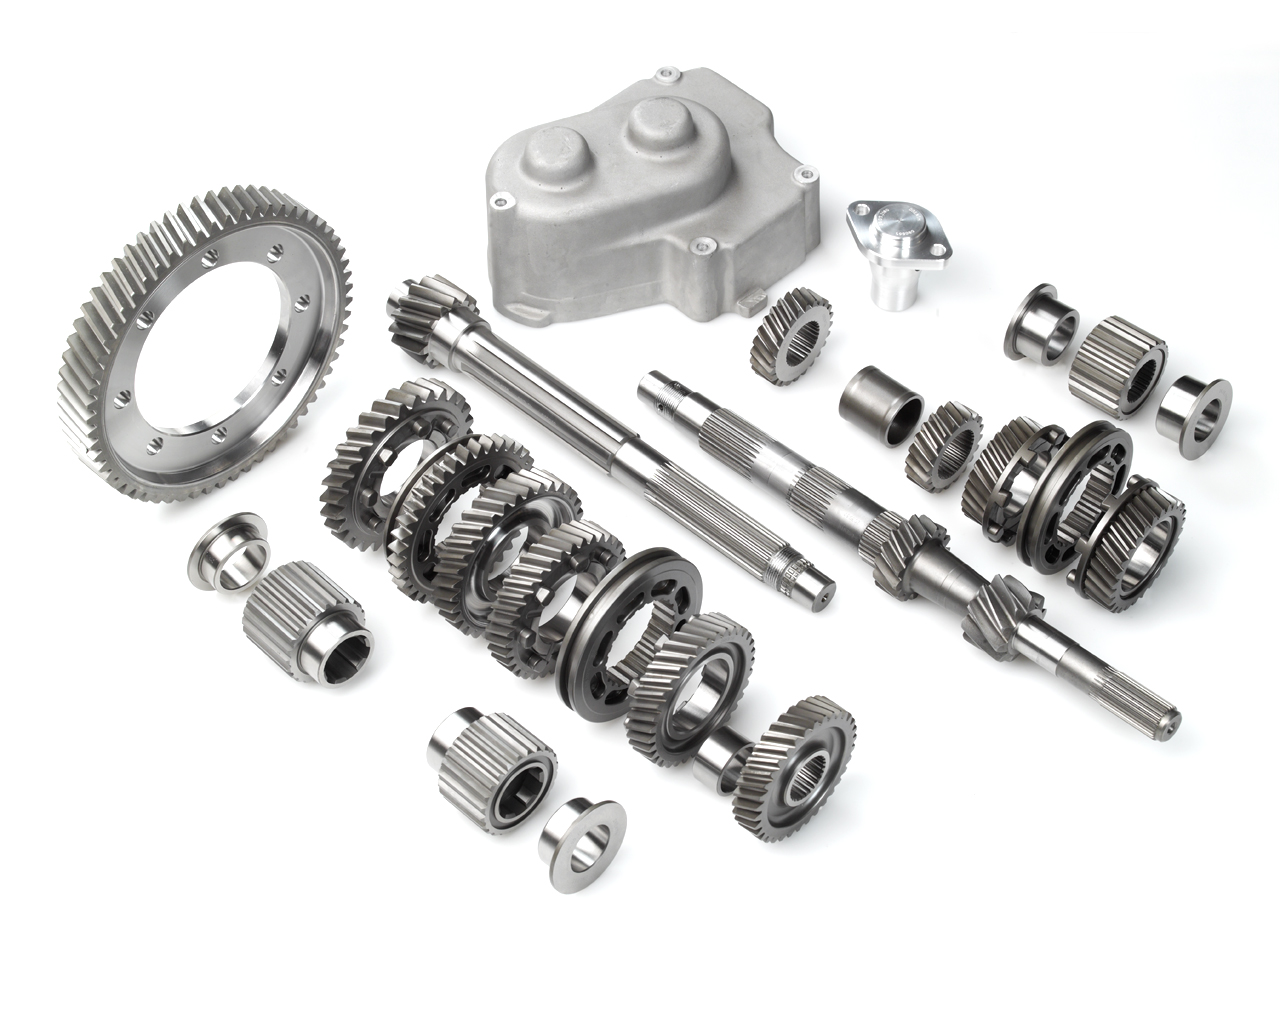 Drenth Volkswagen 02A 4, 5 & 6-Speed Gearkit THUMBNAIL